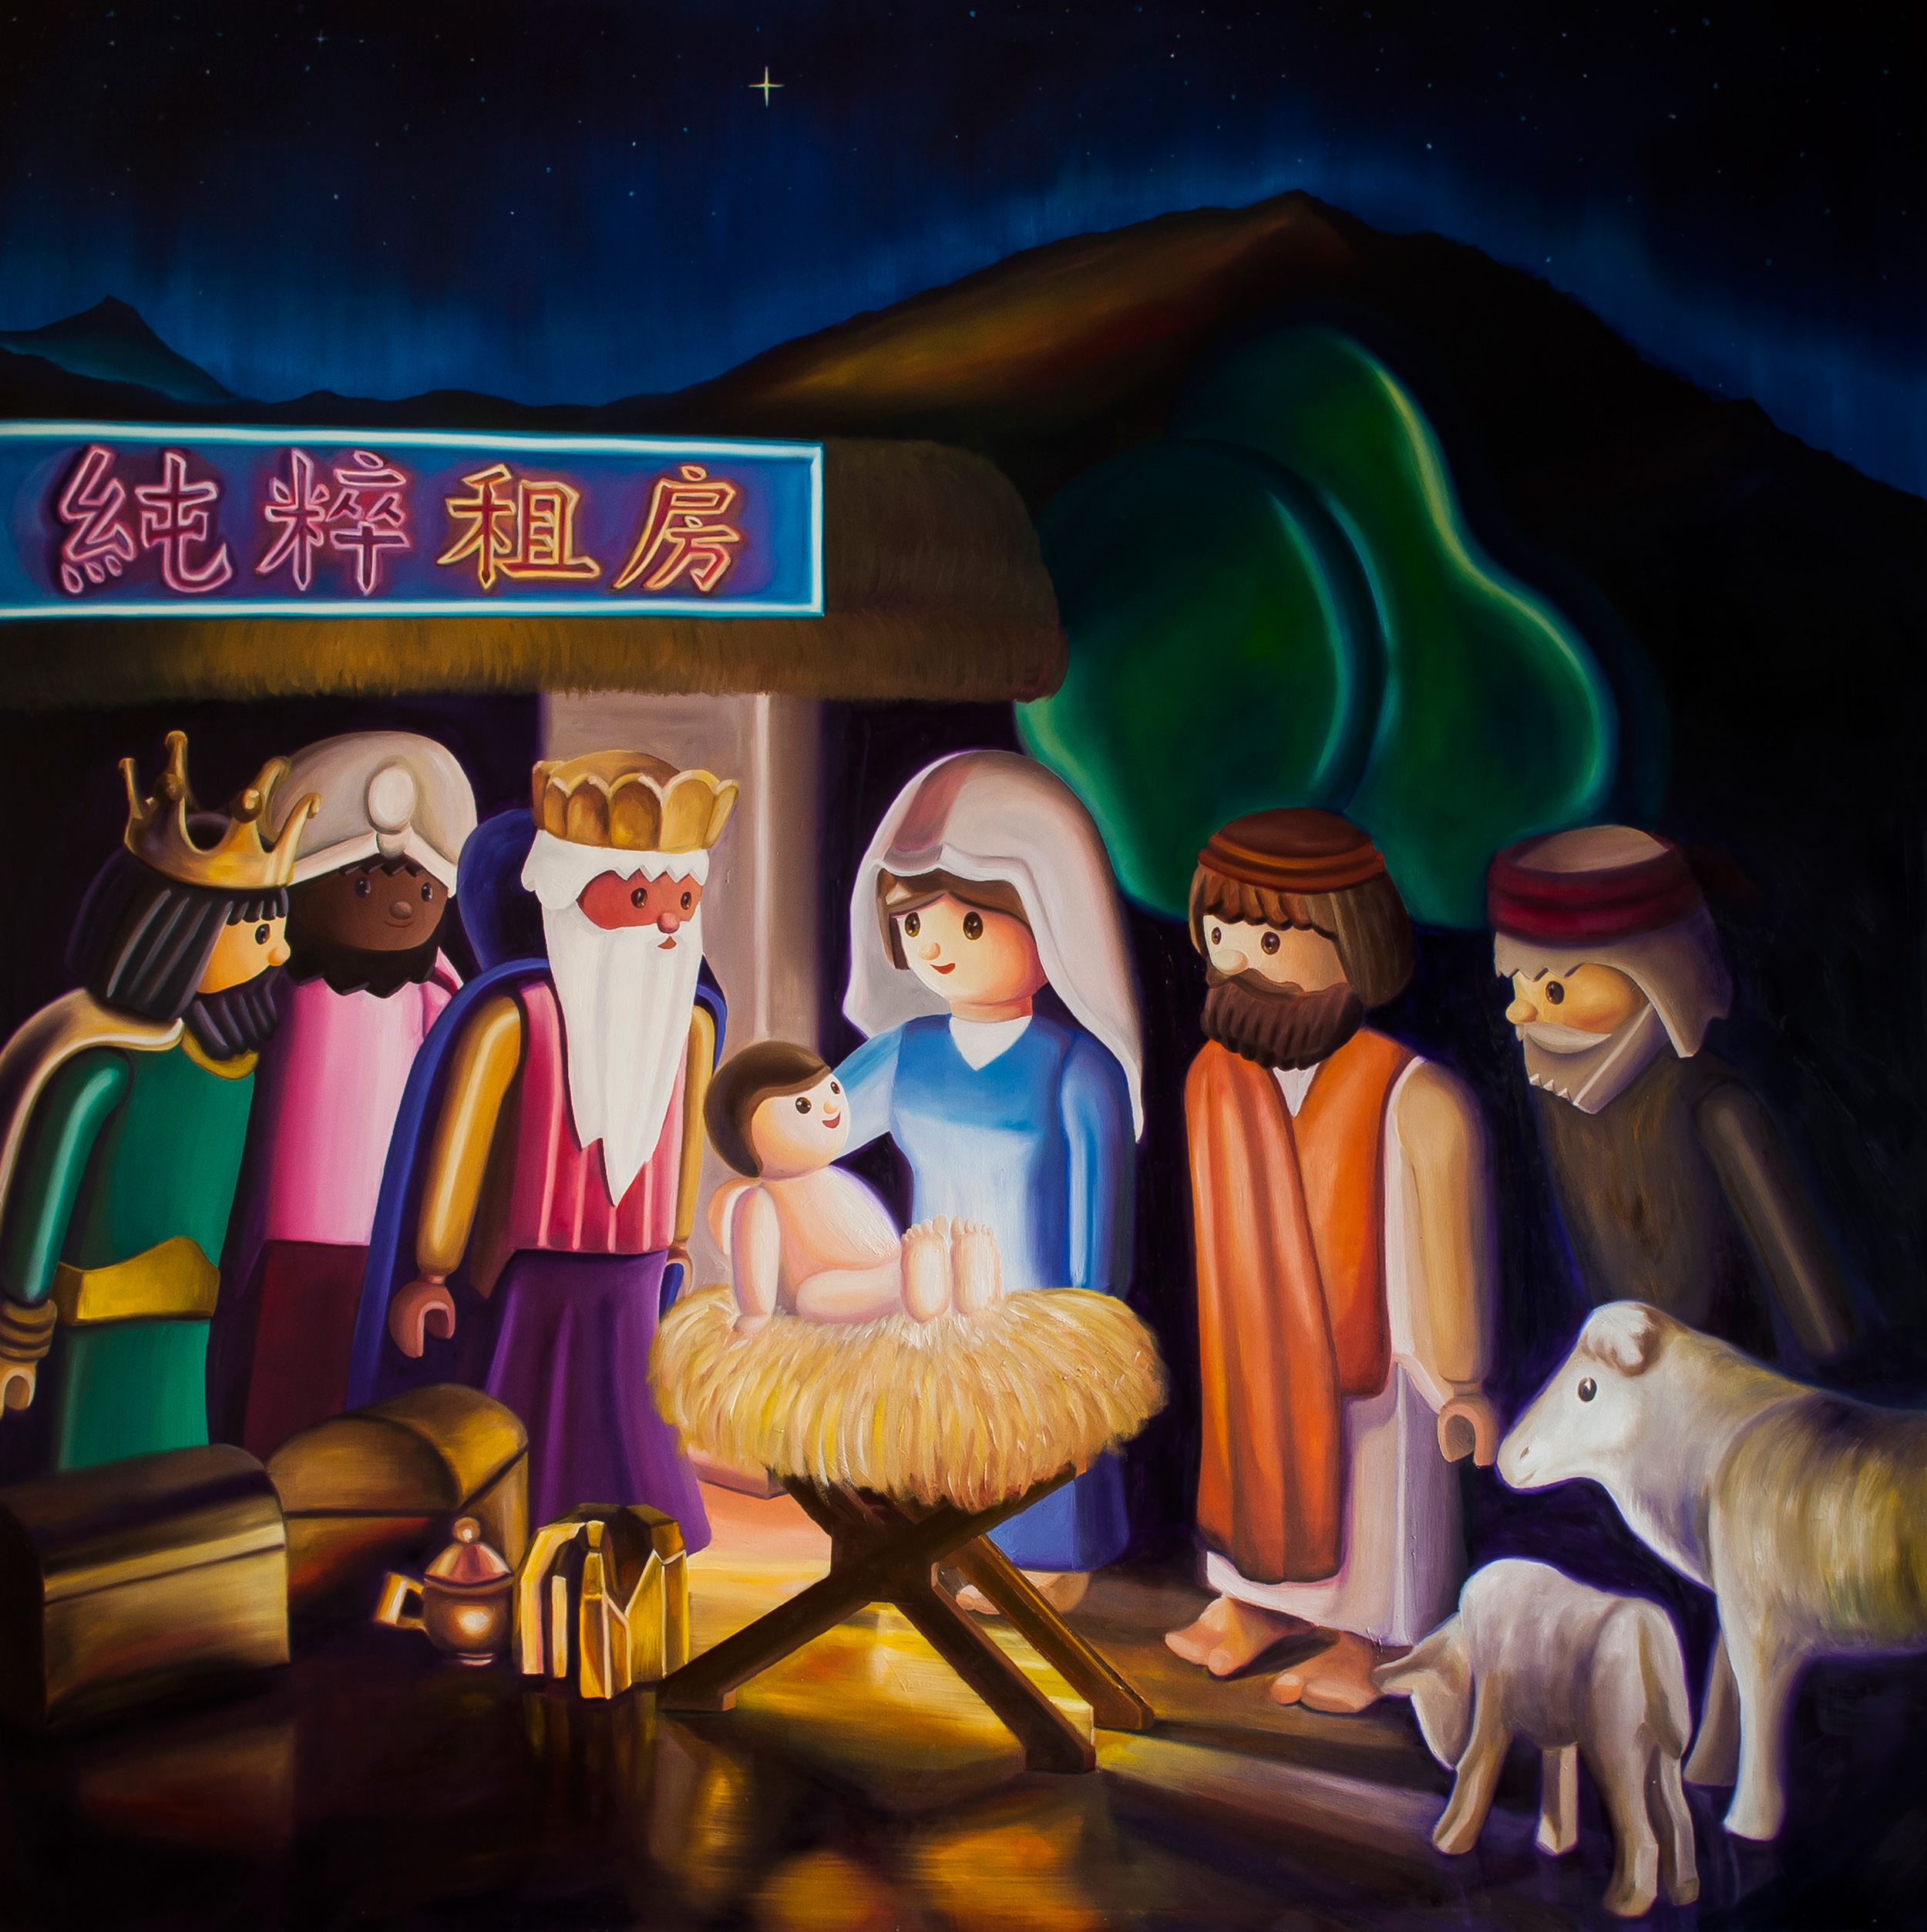 Kenneth_Tsang_The_Adoration_of_Magi_in_HK.jpg